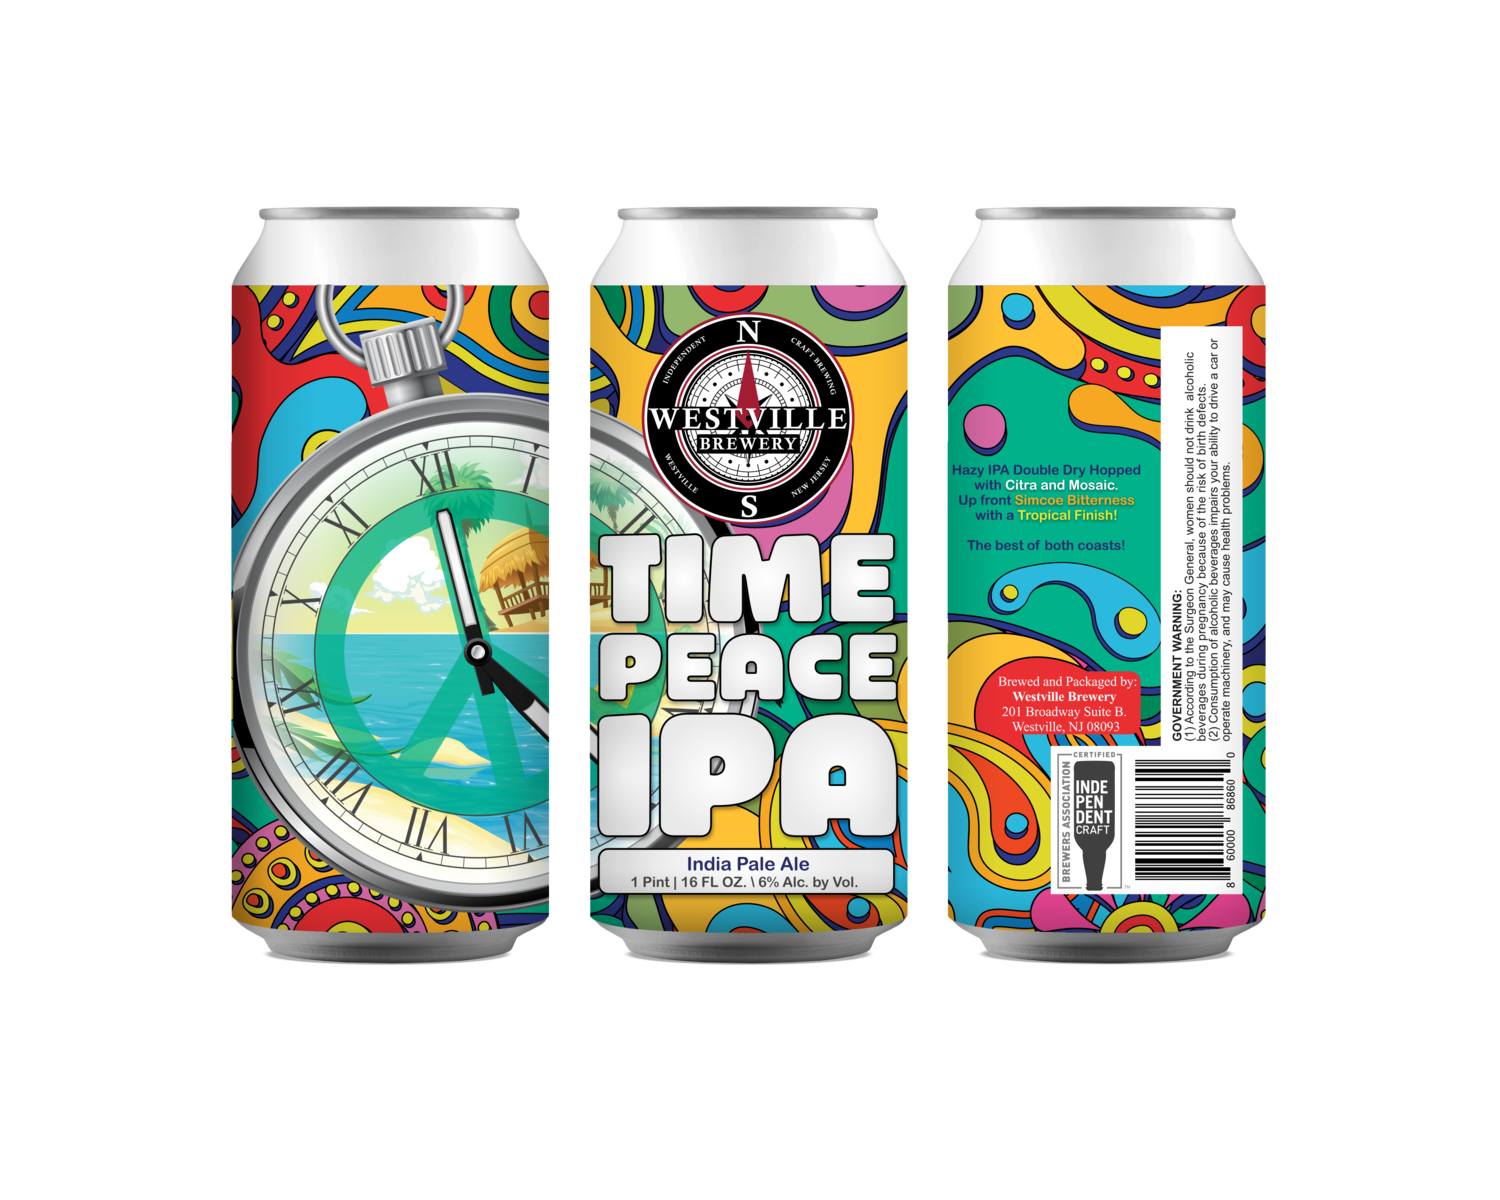 Time Peace IPA - 6% ABV - 4 Pack